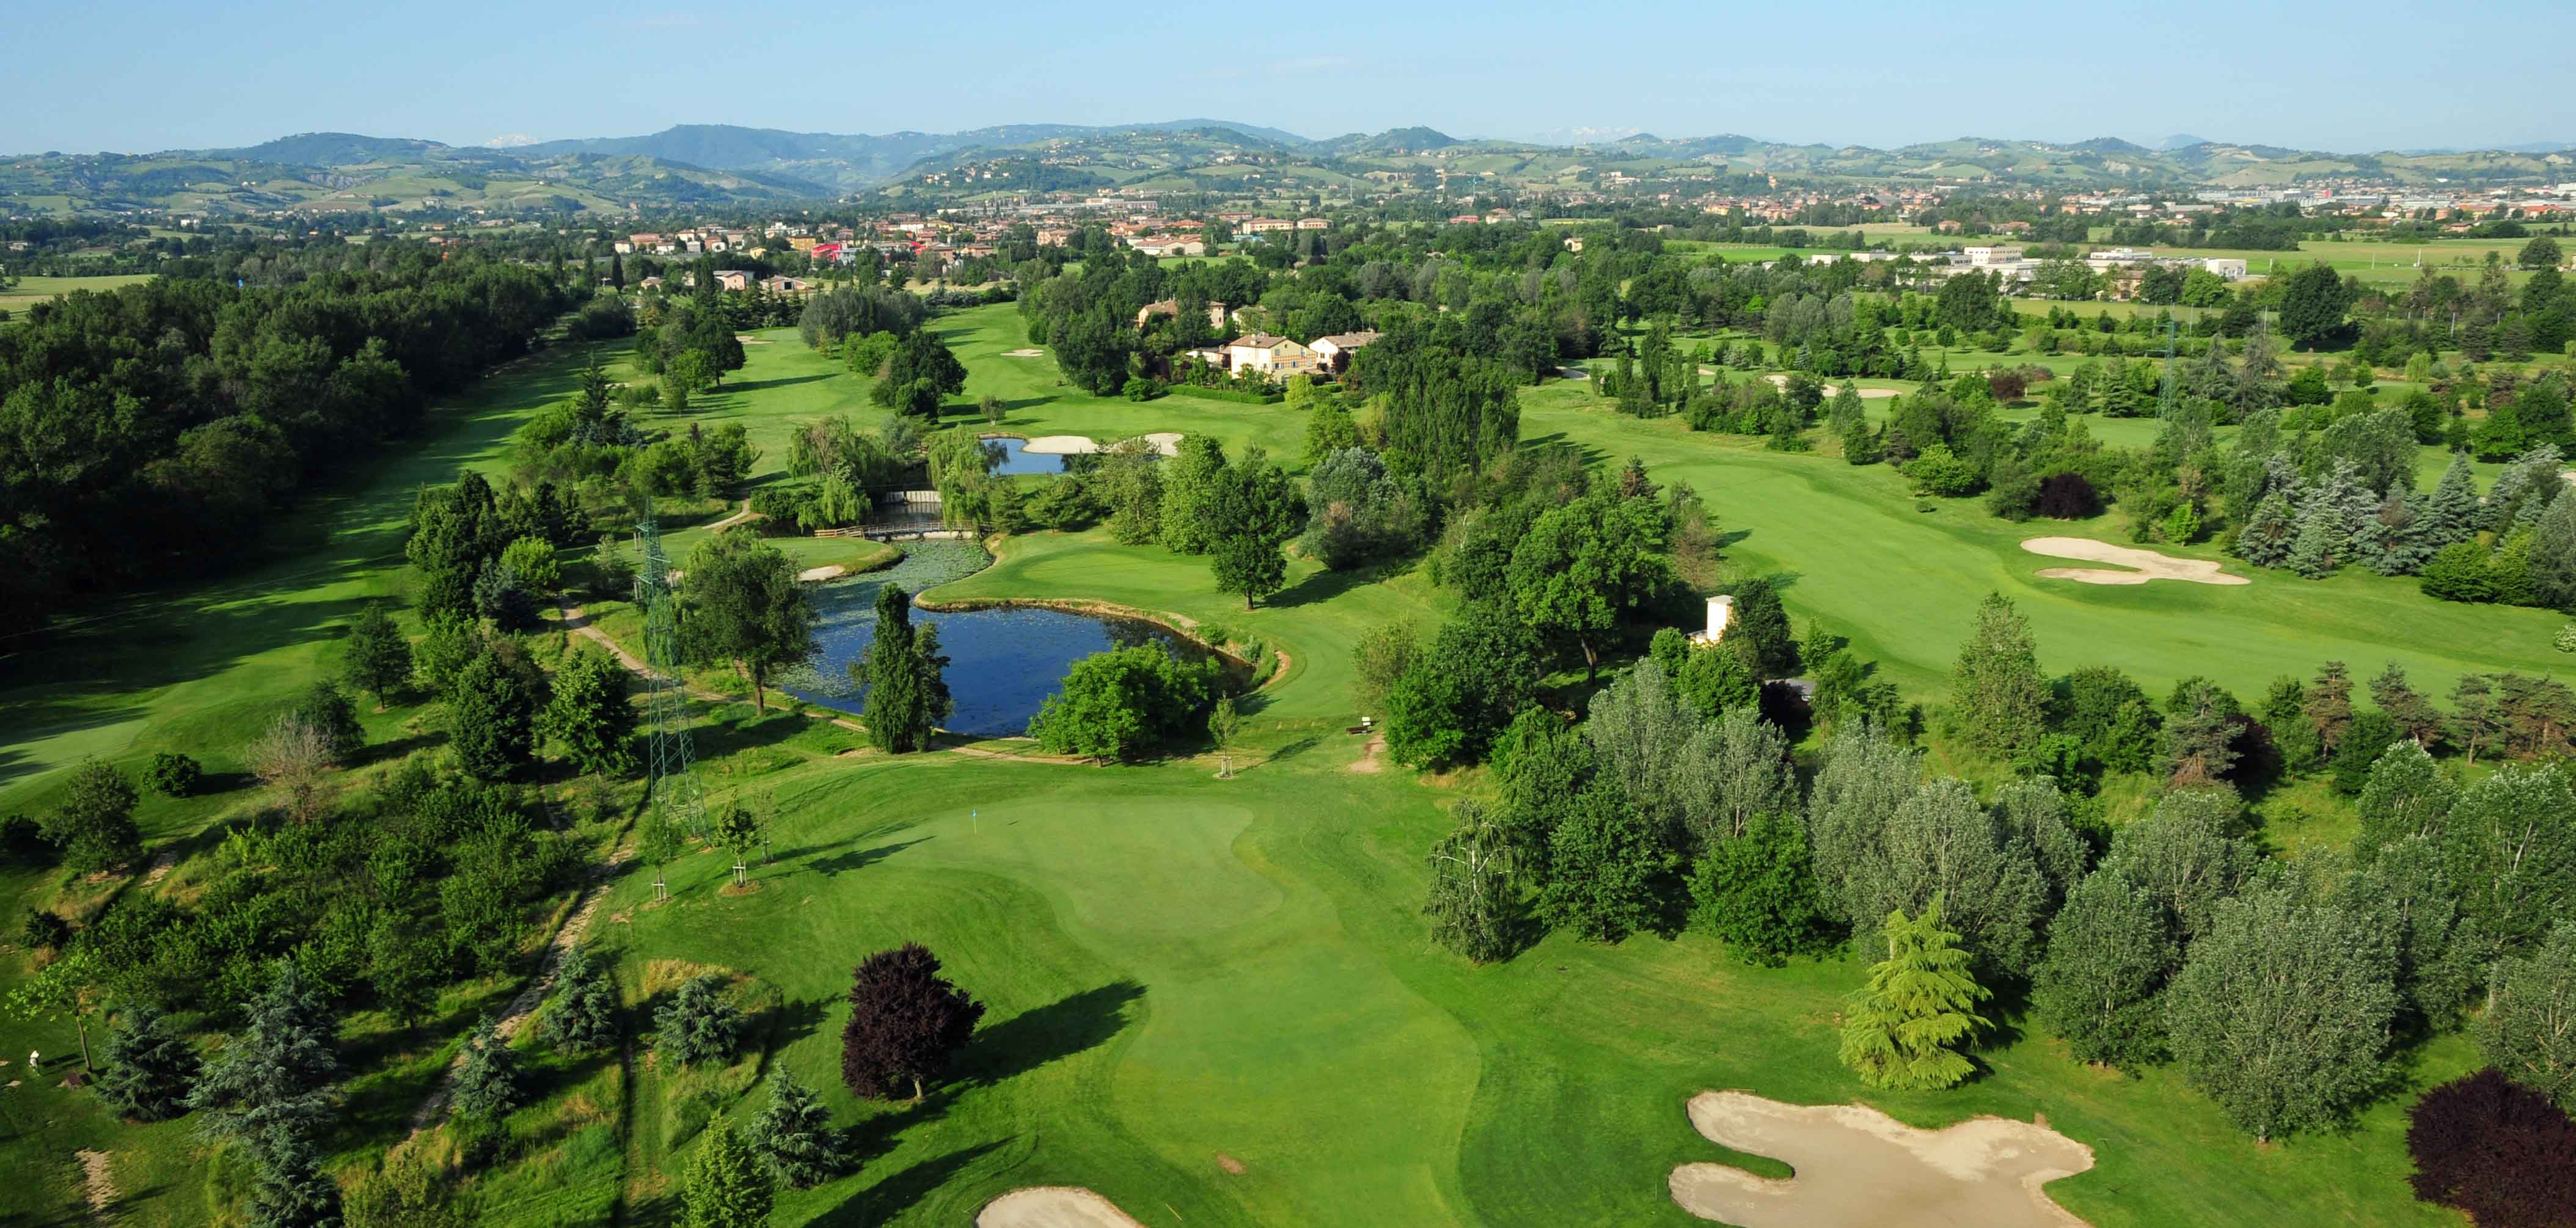 Modeno Golf and Country Club Aerial